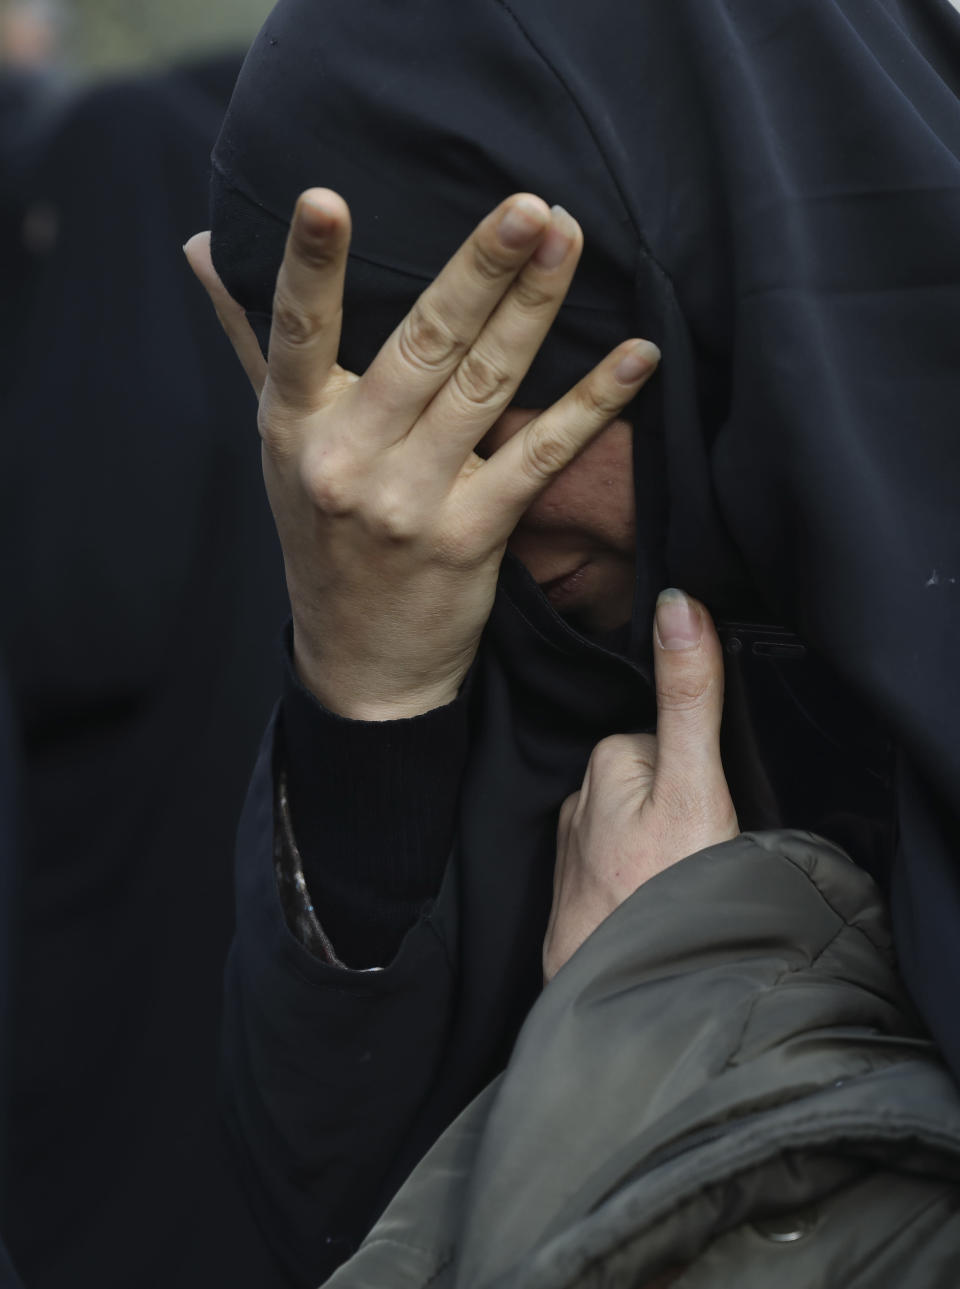 "A woman mourns in a demonstration over the U.S. airstrike in Iraq that killed Iranian Revolutionary Guard Gen. Qassem Soleimani in Tehran, Iran, Jan. 3, 2020. Iran has vowed ""harsh retaliation"" for the U.S. airstrike near Baghdad's airport that killed Tehran's top general and the architect of its interventions across the Middle East, as tensions soared in the wake of the targeted killing. (AP Photo/Vahid Salemi)"